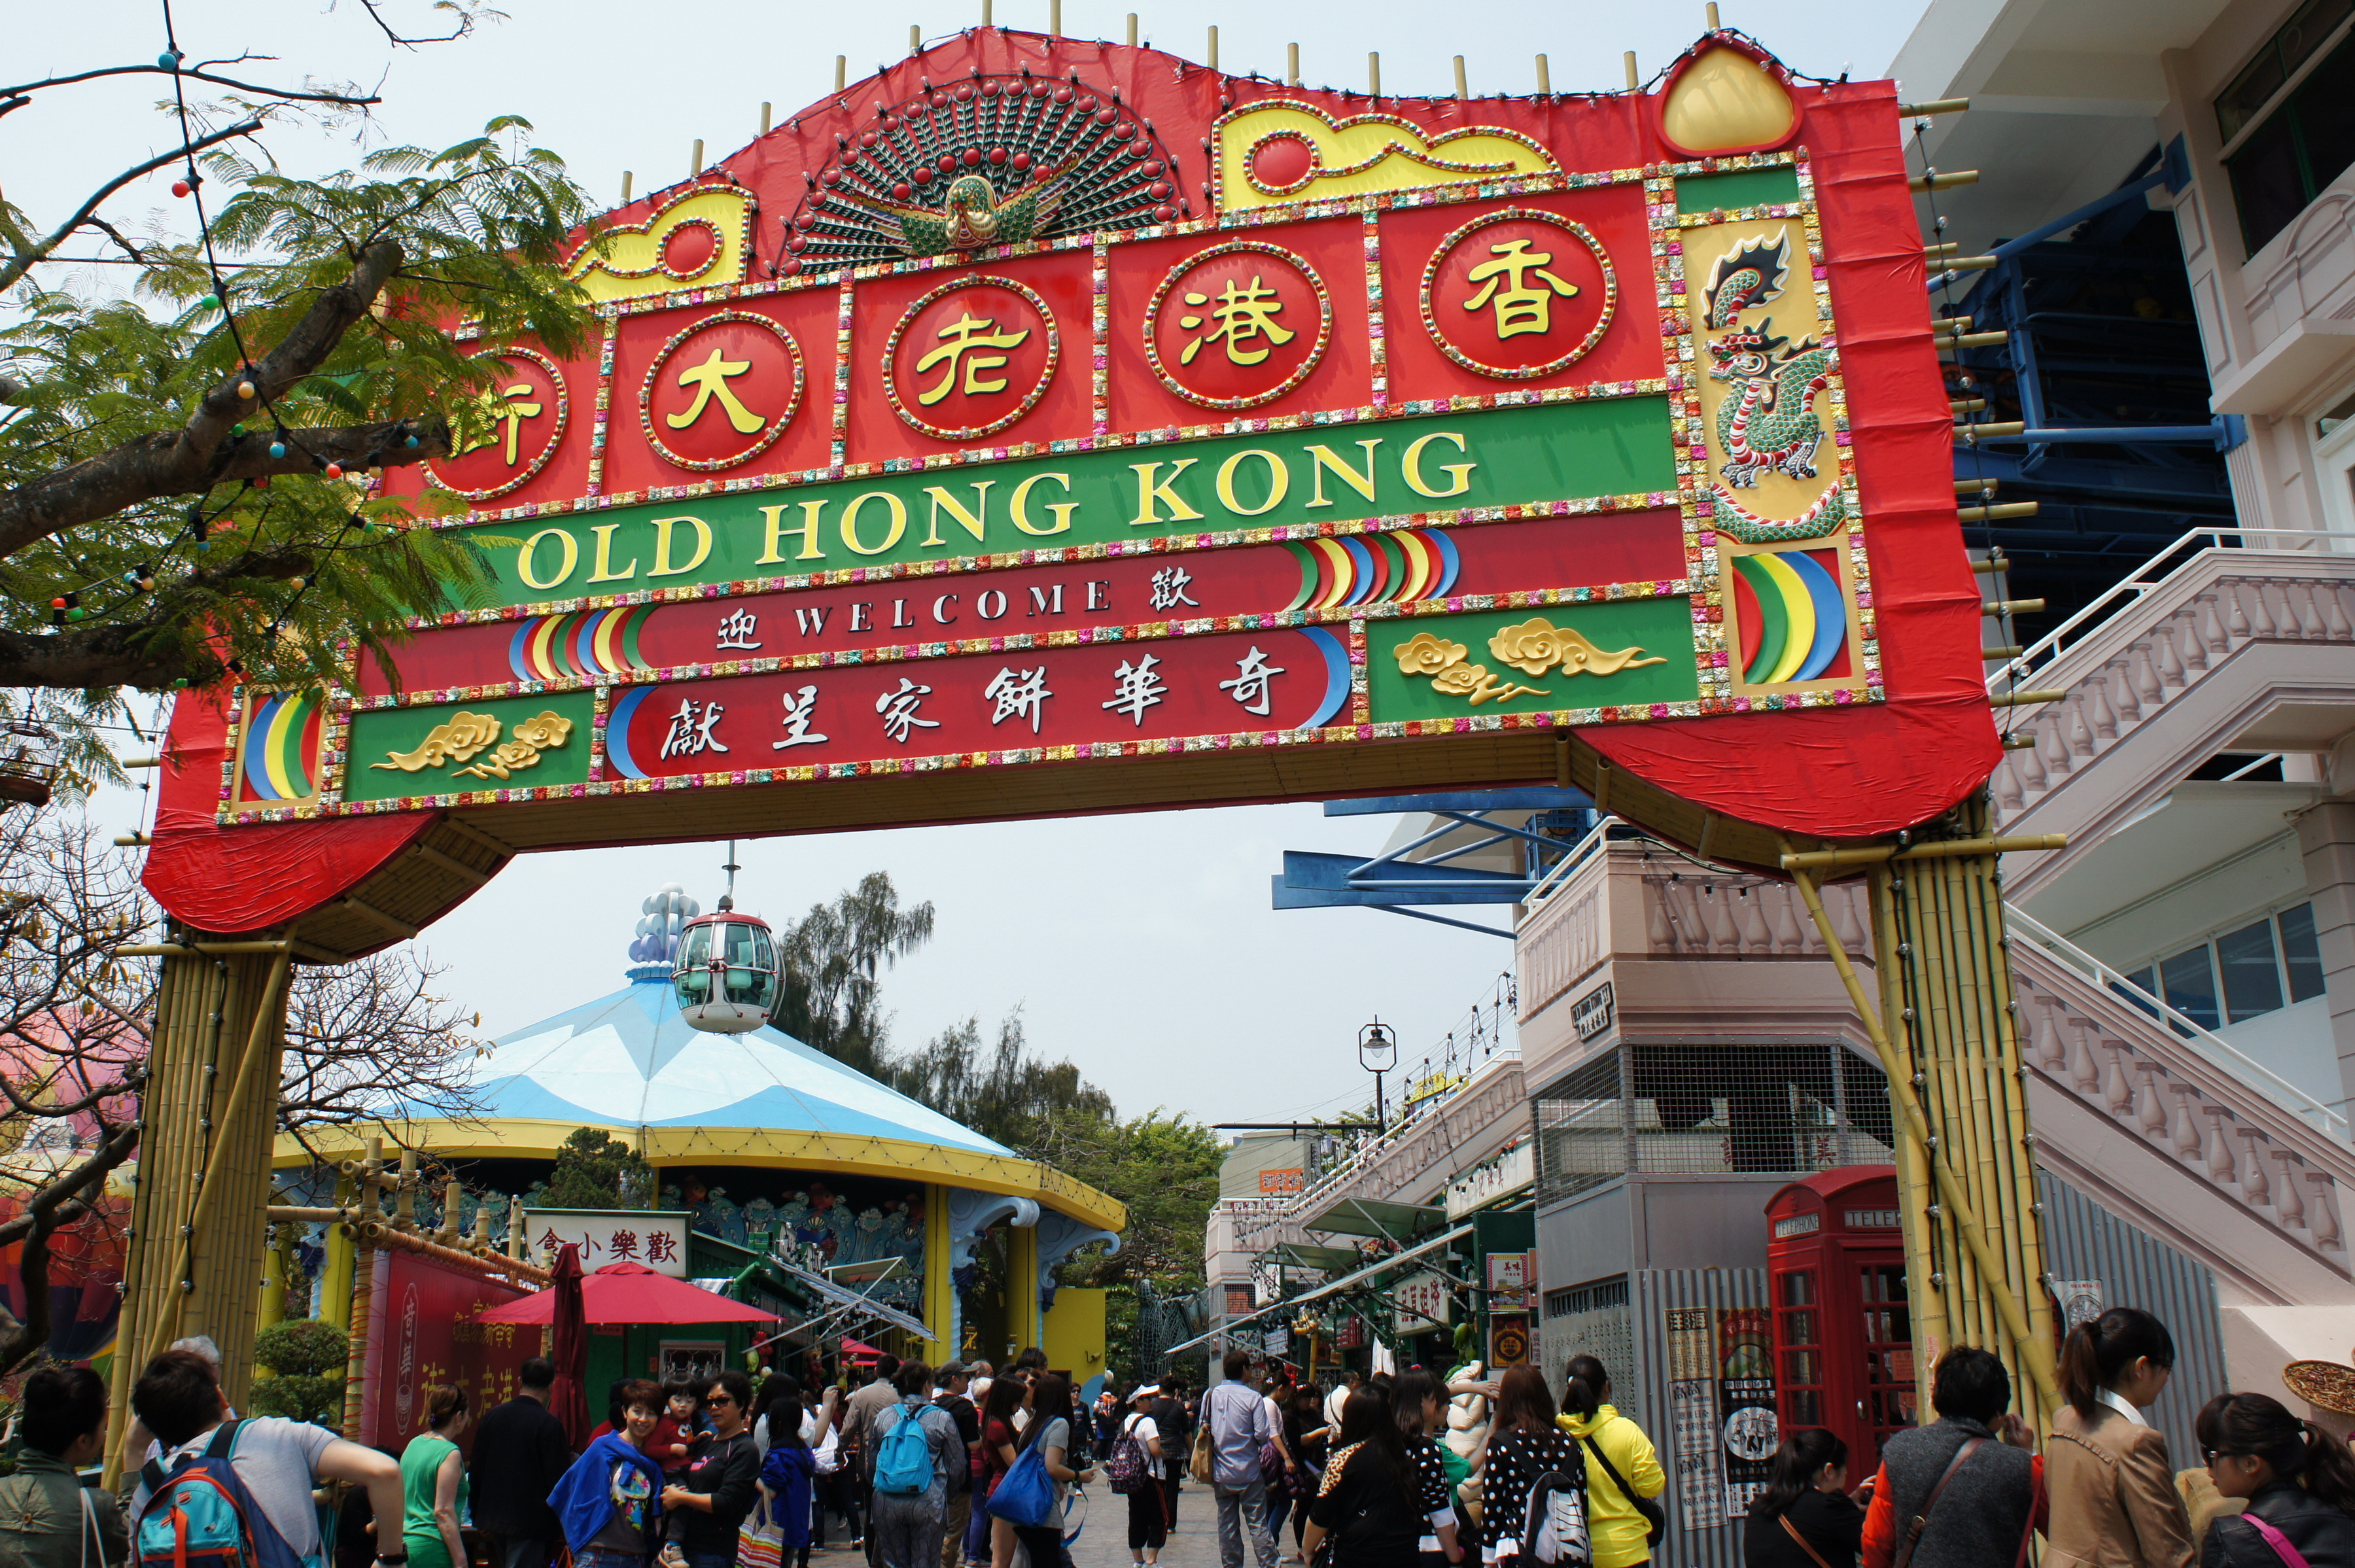 hong kong s ocean park taking on disney Ocean park hong kong temple street night market  guests staying at the hong kong disneyland resort are invited to join fun activities throughout the day at the.